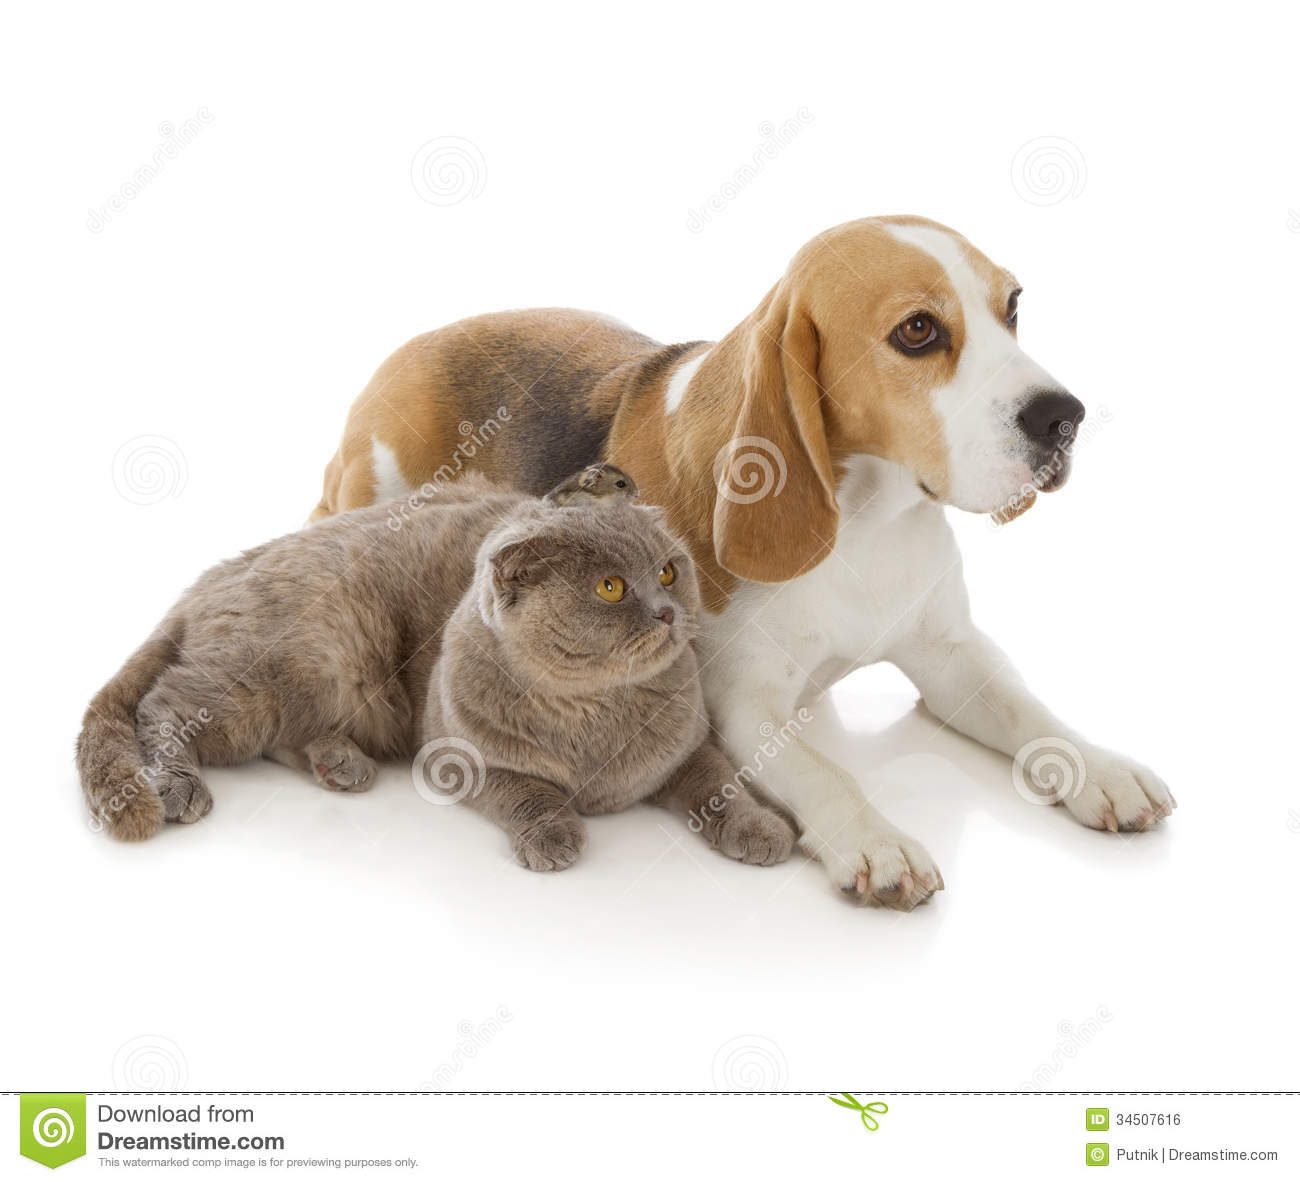 Dog, Cat And Mouse Stock Photo. Image Of Domestic, Breed